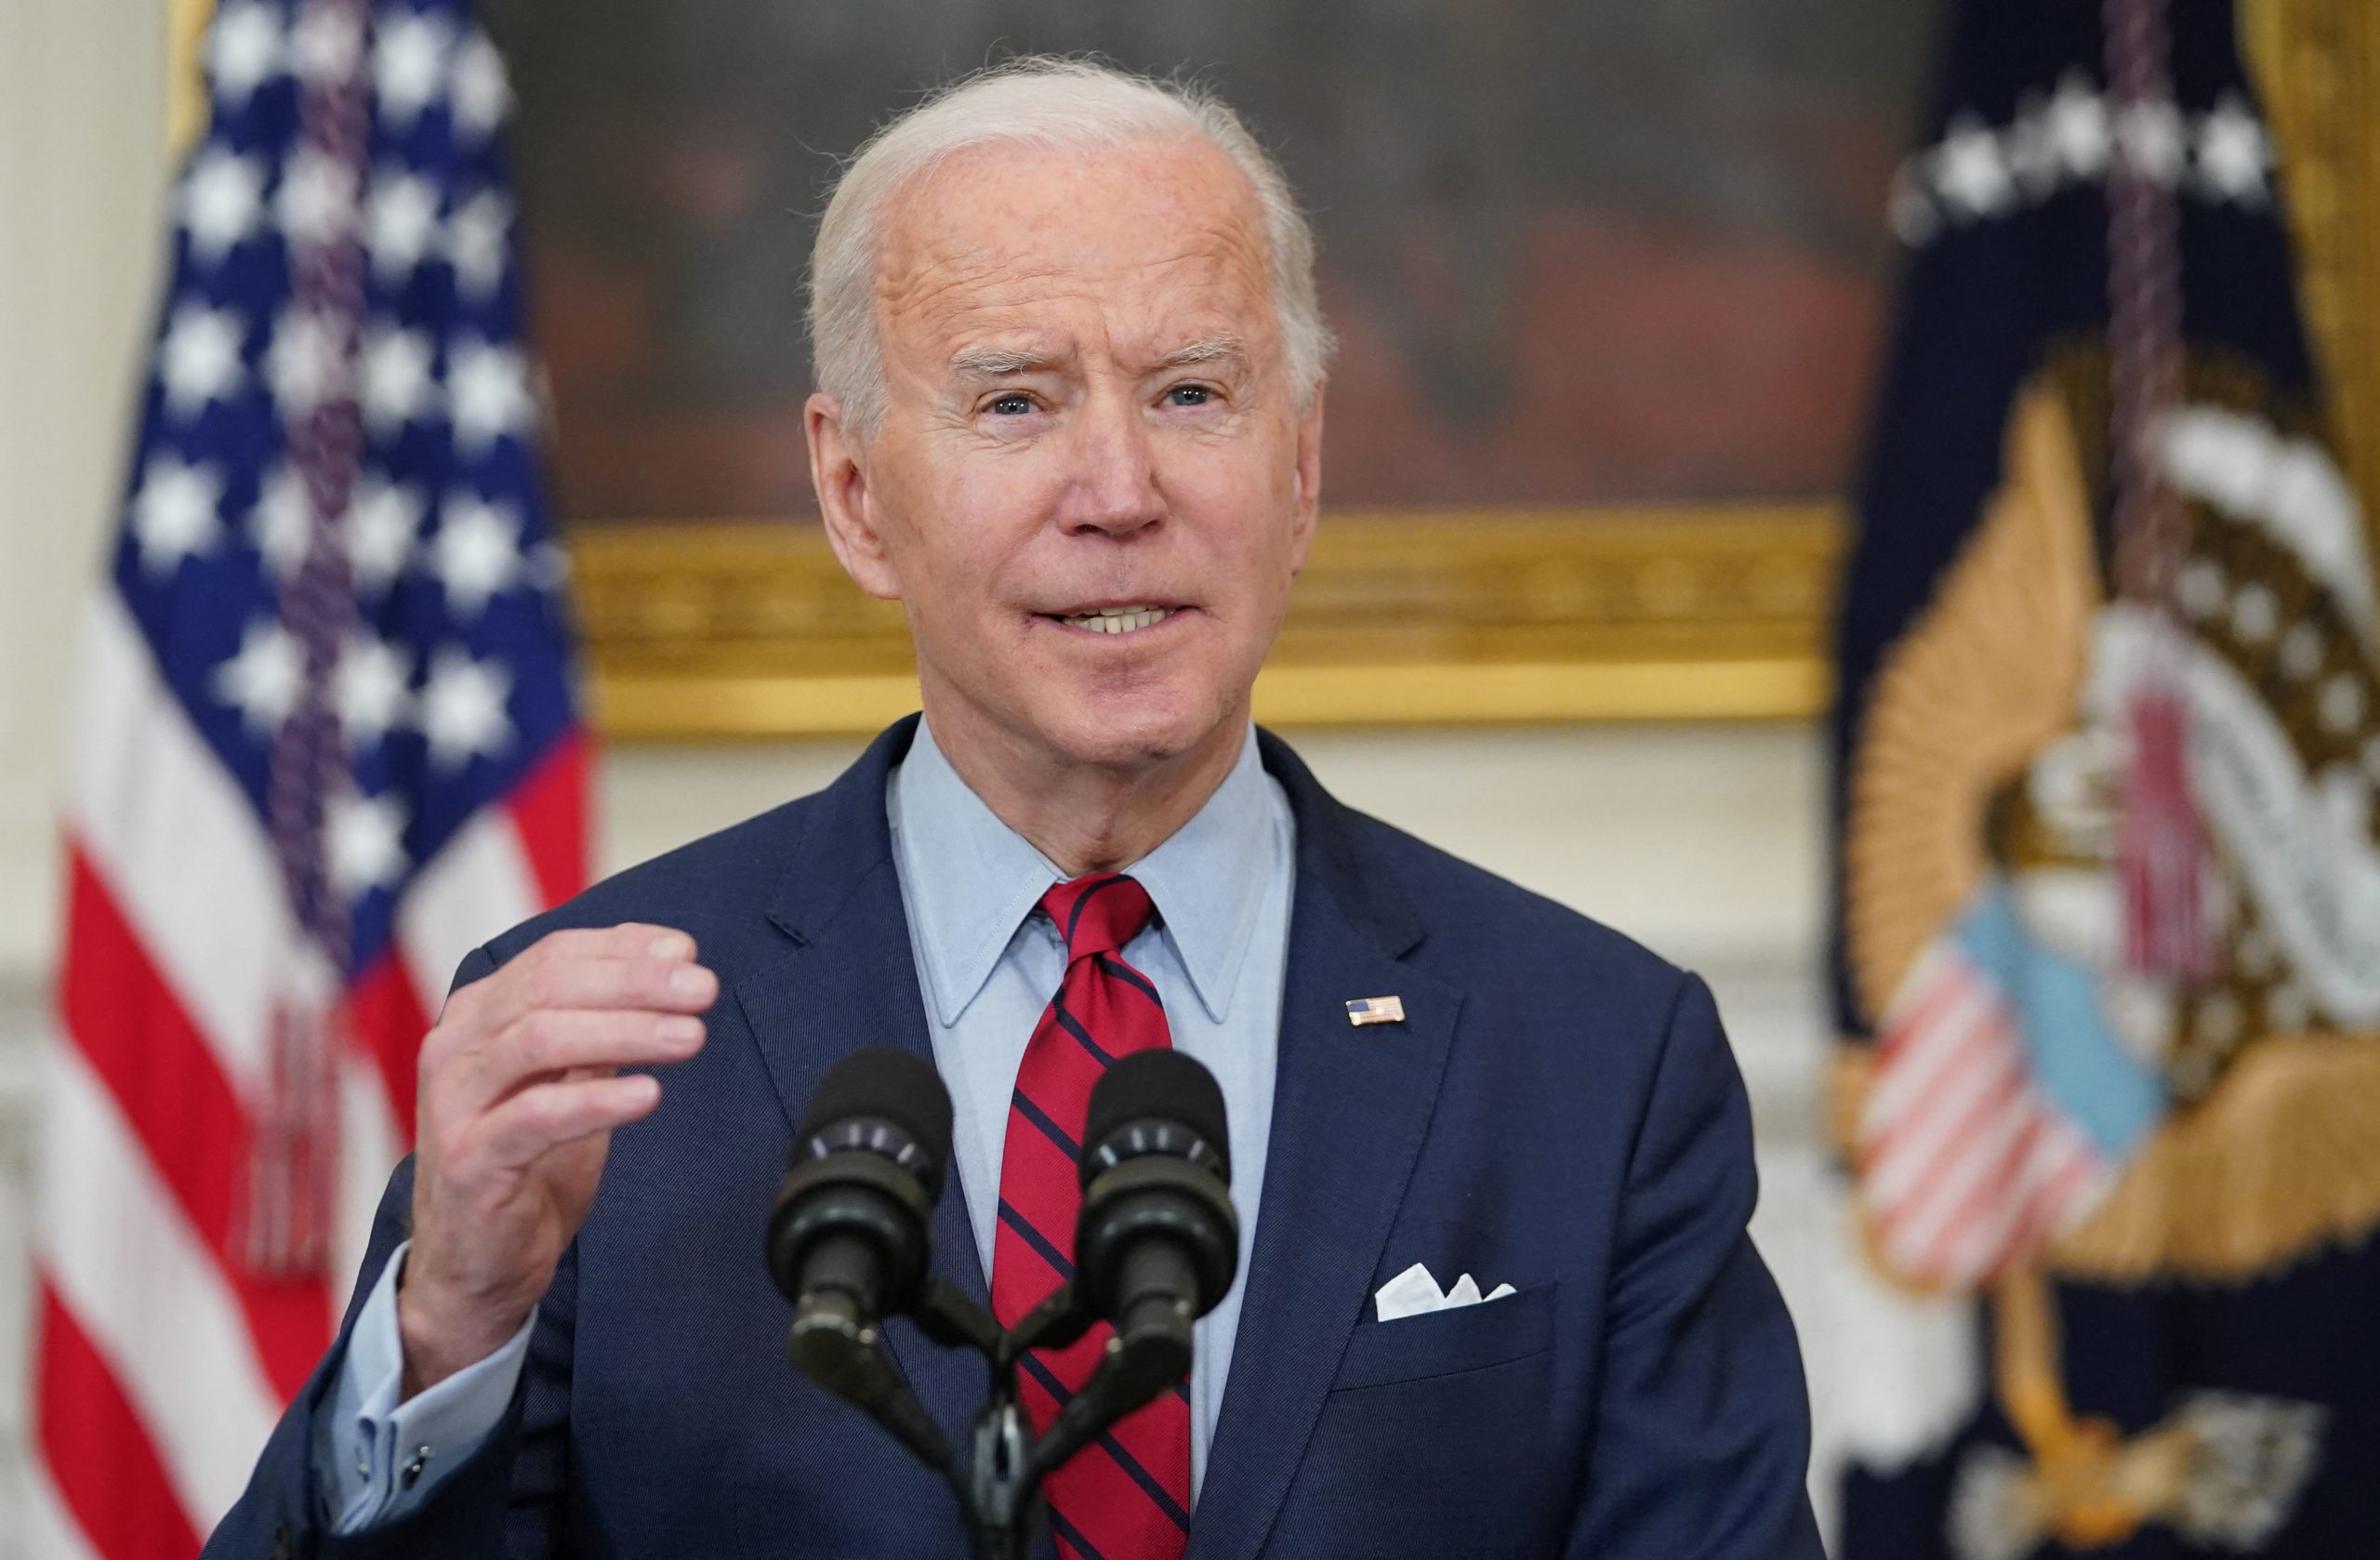 US President Joe Biden speaks about the Colorado shootings in the State Dining Room of the White House in Washington, DC, on March 23, 2021. - A 21-year-old man was charged Tuesday with gunning 10 people down in a Colorado grocery store, as America reeled from its second mass shooting in less than a week -- sparking urgent new calls for gun control. The suspect, named as Ahmad Al Aliwi Alissa, was in hospital after being shot in an exchange of fire with officers following the attack on King Soopers Supermarket in Boulder County, 30 miles (50kms) northwest of the state capital Denver, on March 22. (Photo by MANDEL NGAN/AFP via Getty Images)